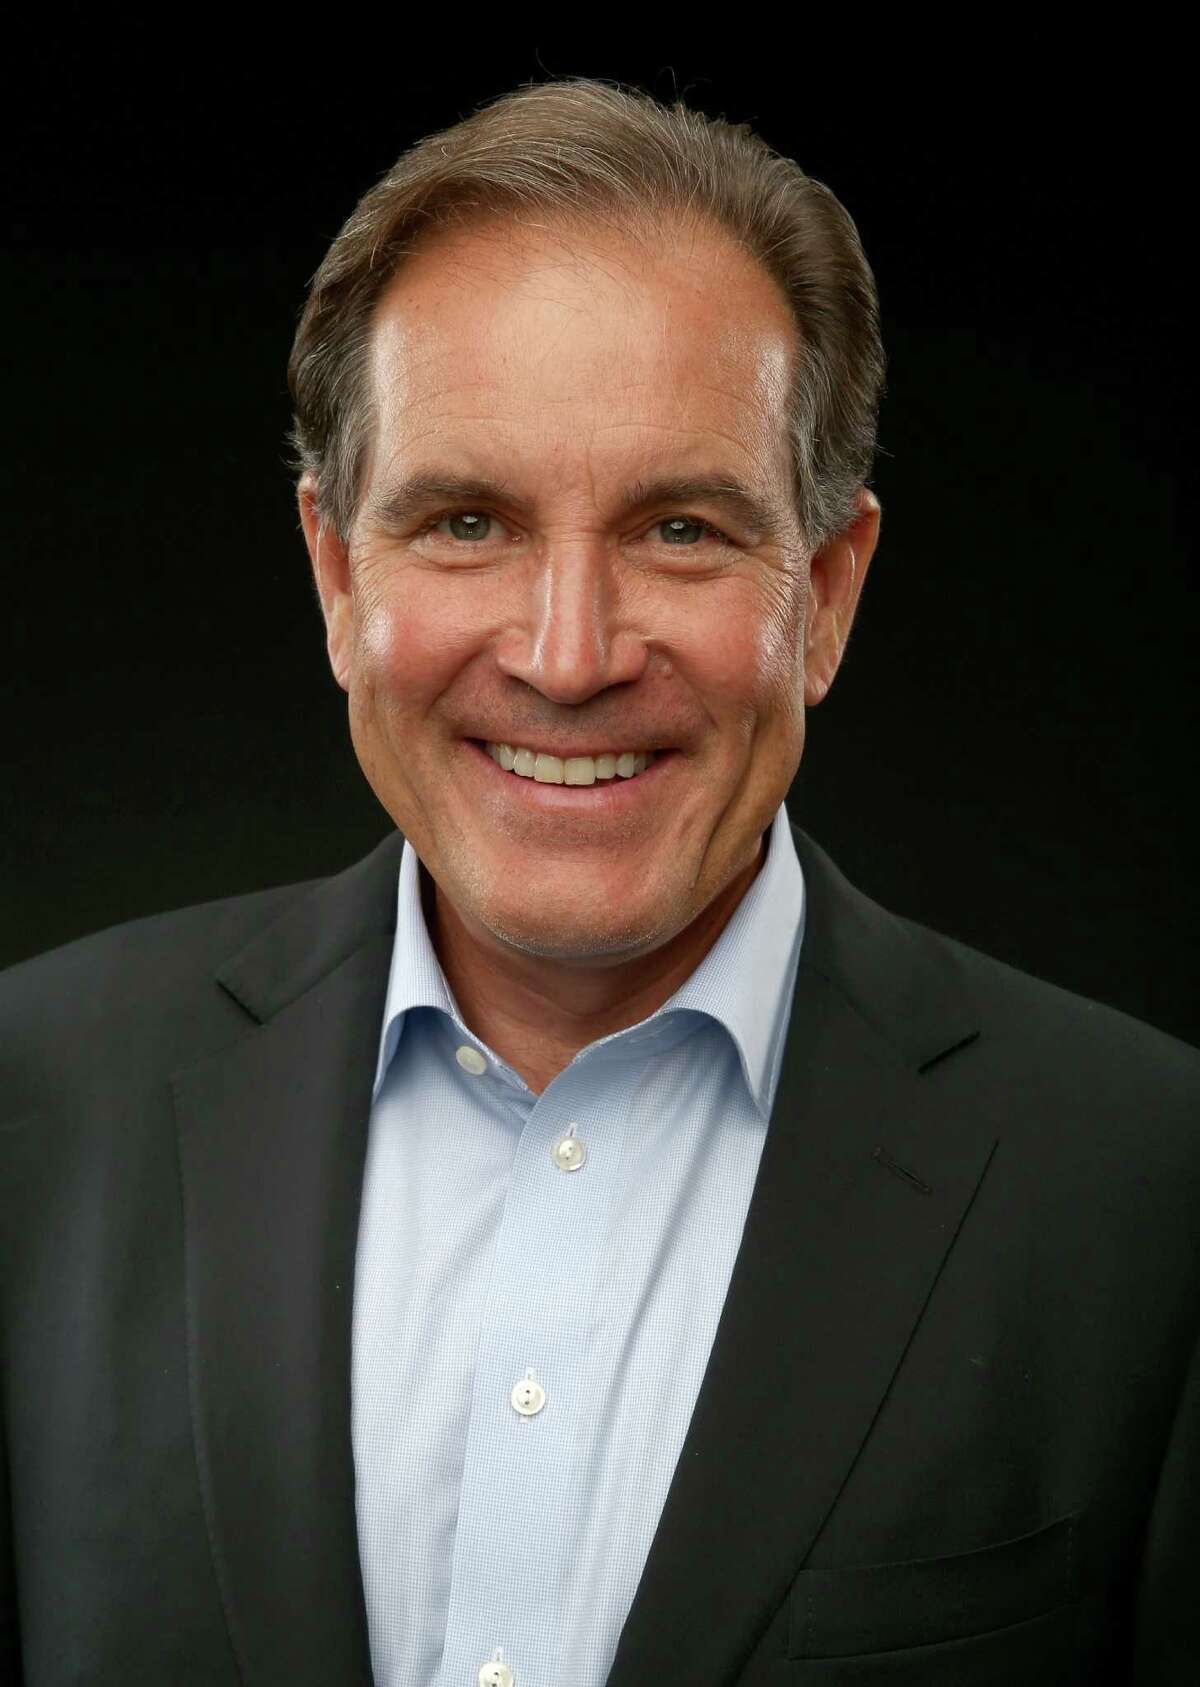 BEVERLY HILLS, CA - JULY 17: CBS' 'NFL Thursday Night Footbal' host Jim Nantz pose for a portrait during CBS' 2014 Summer TCA tour at The Beverly Hilton Hotel on July 17, 2014 in Beverly Hills, California. (Photo by Christopher Polk/CBS via Getty Images)